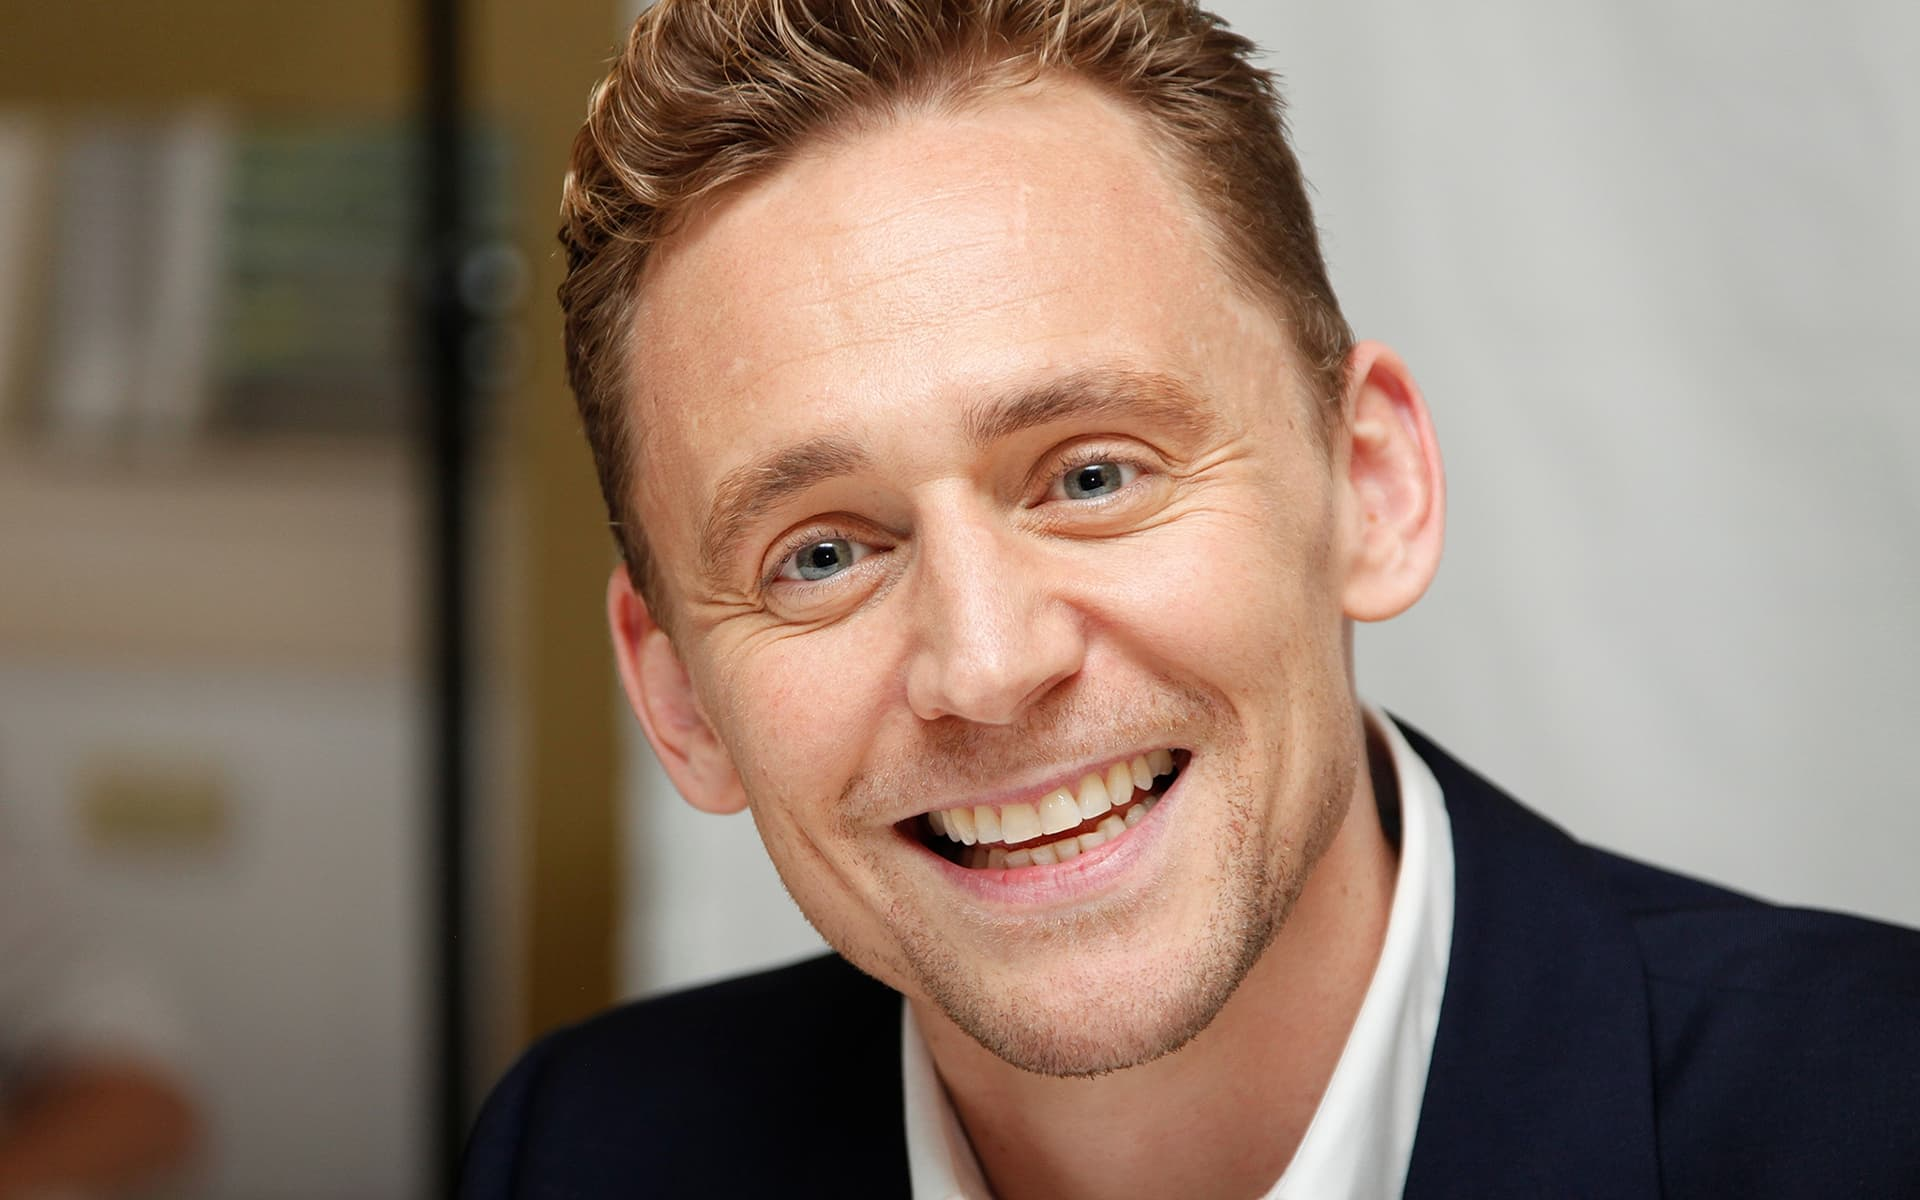 15 Tom Hiddleston Wallpapers High Quality Resolution Download